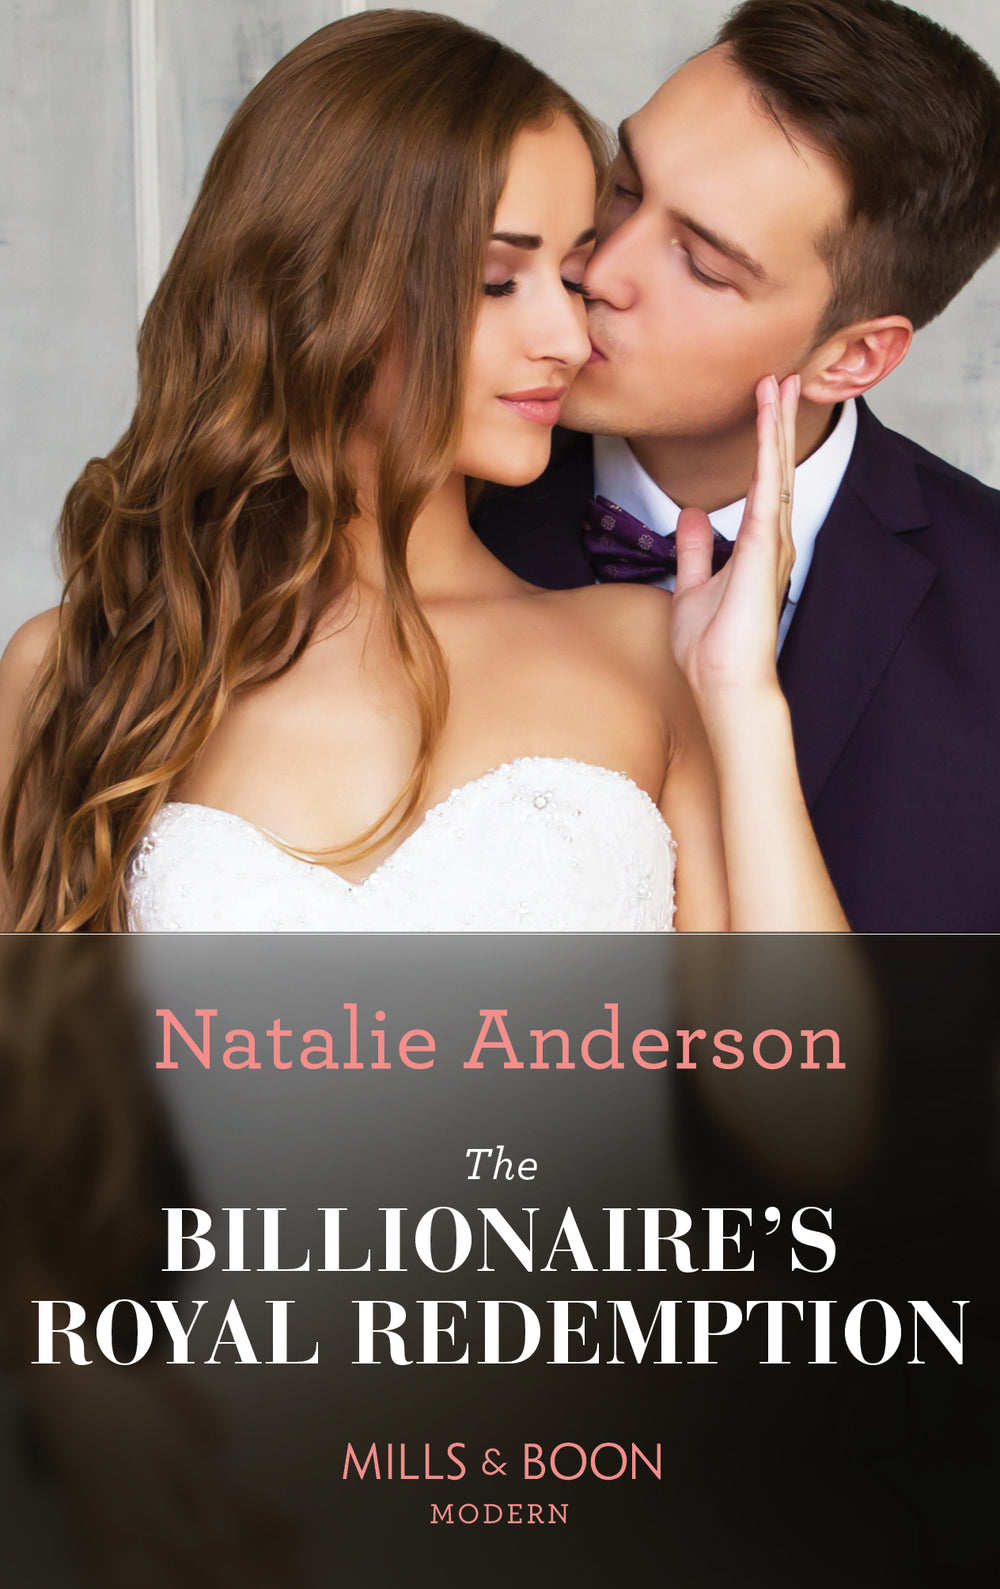 The Billionaire's Royal Redemption - Chapter 7